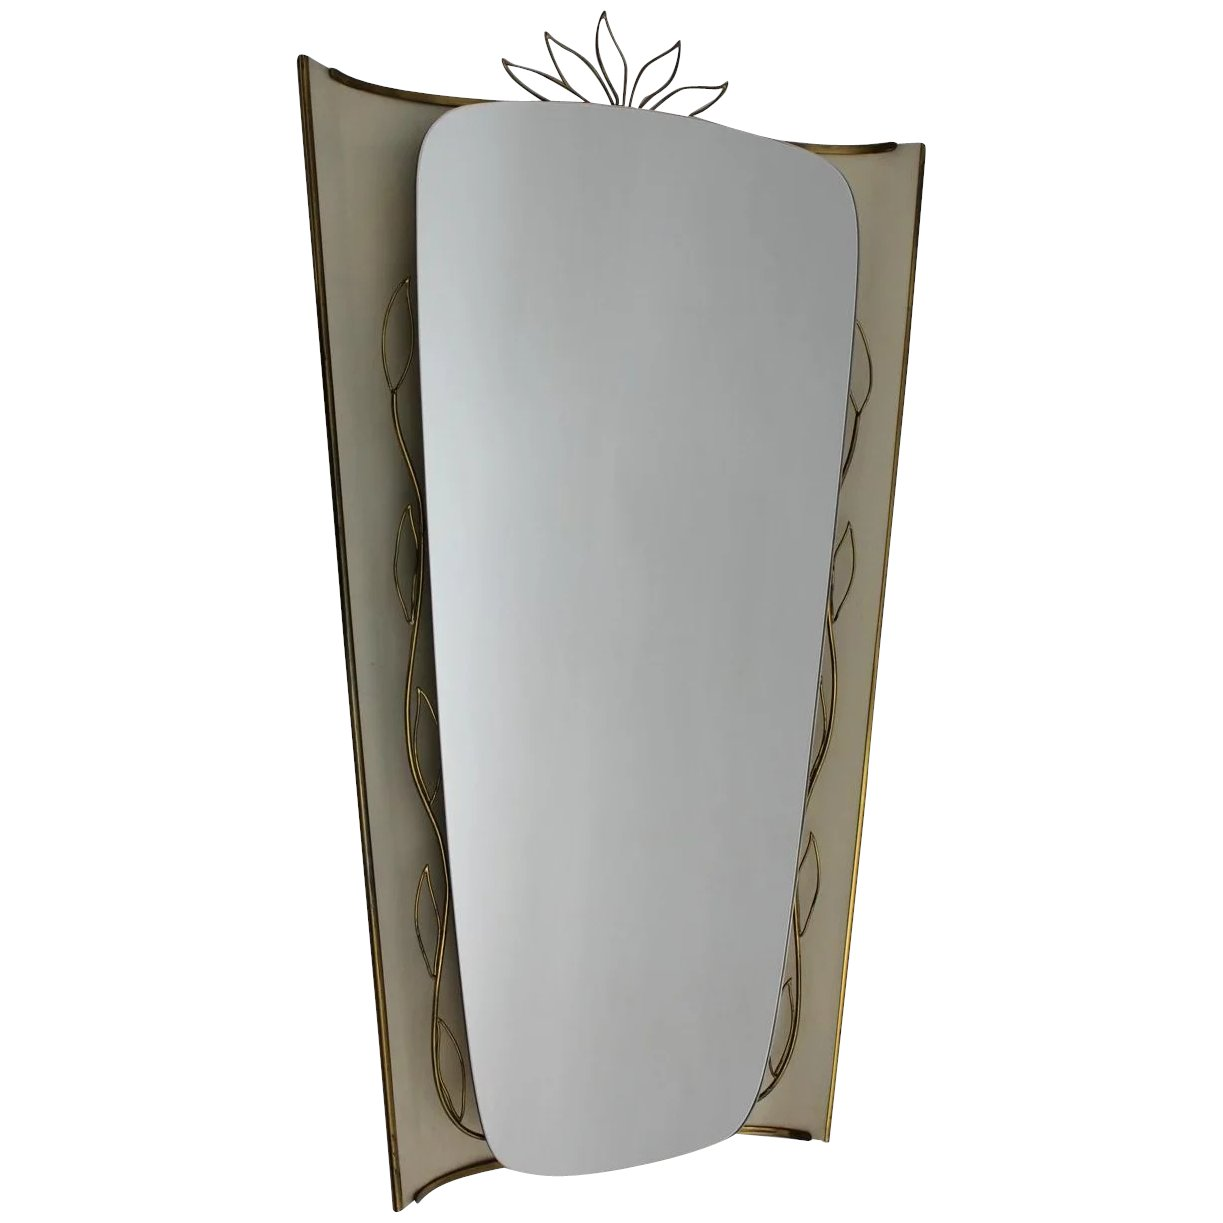 Mid Century Modern Lit Up Wall Mirror In The Style Of Gio Ponti Italy 1950s